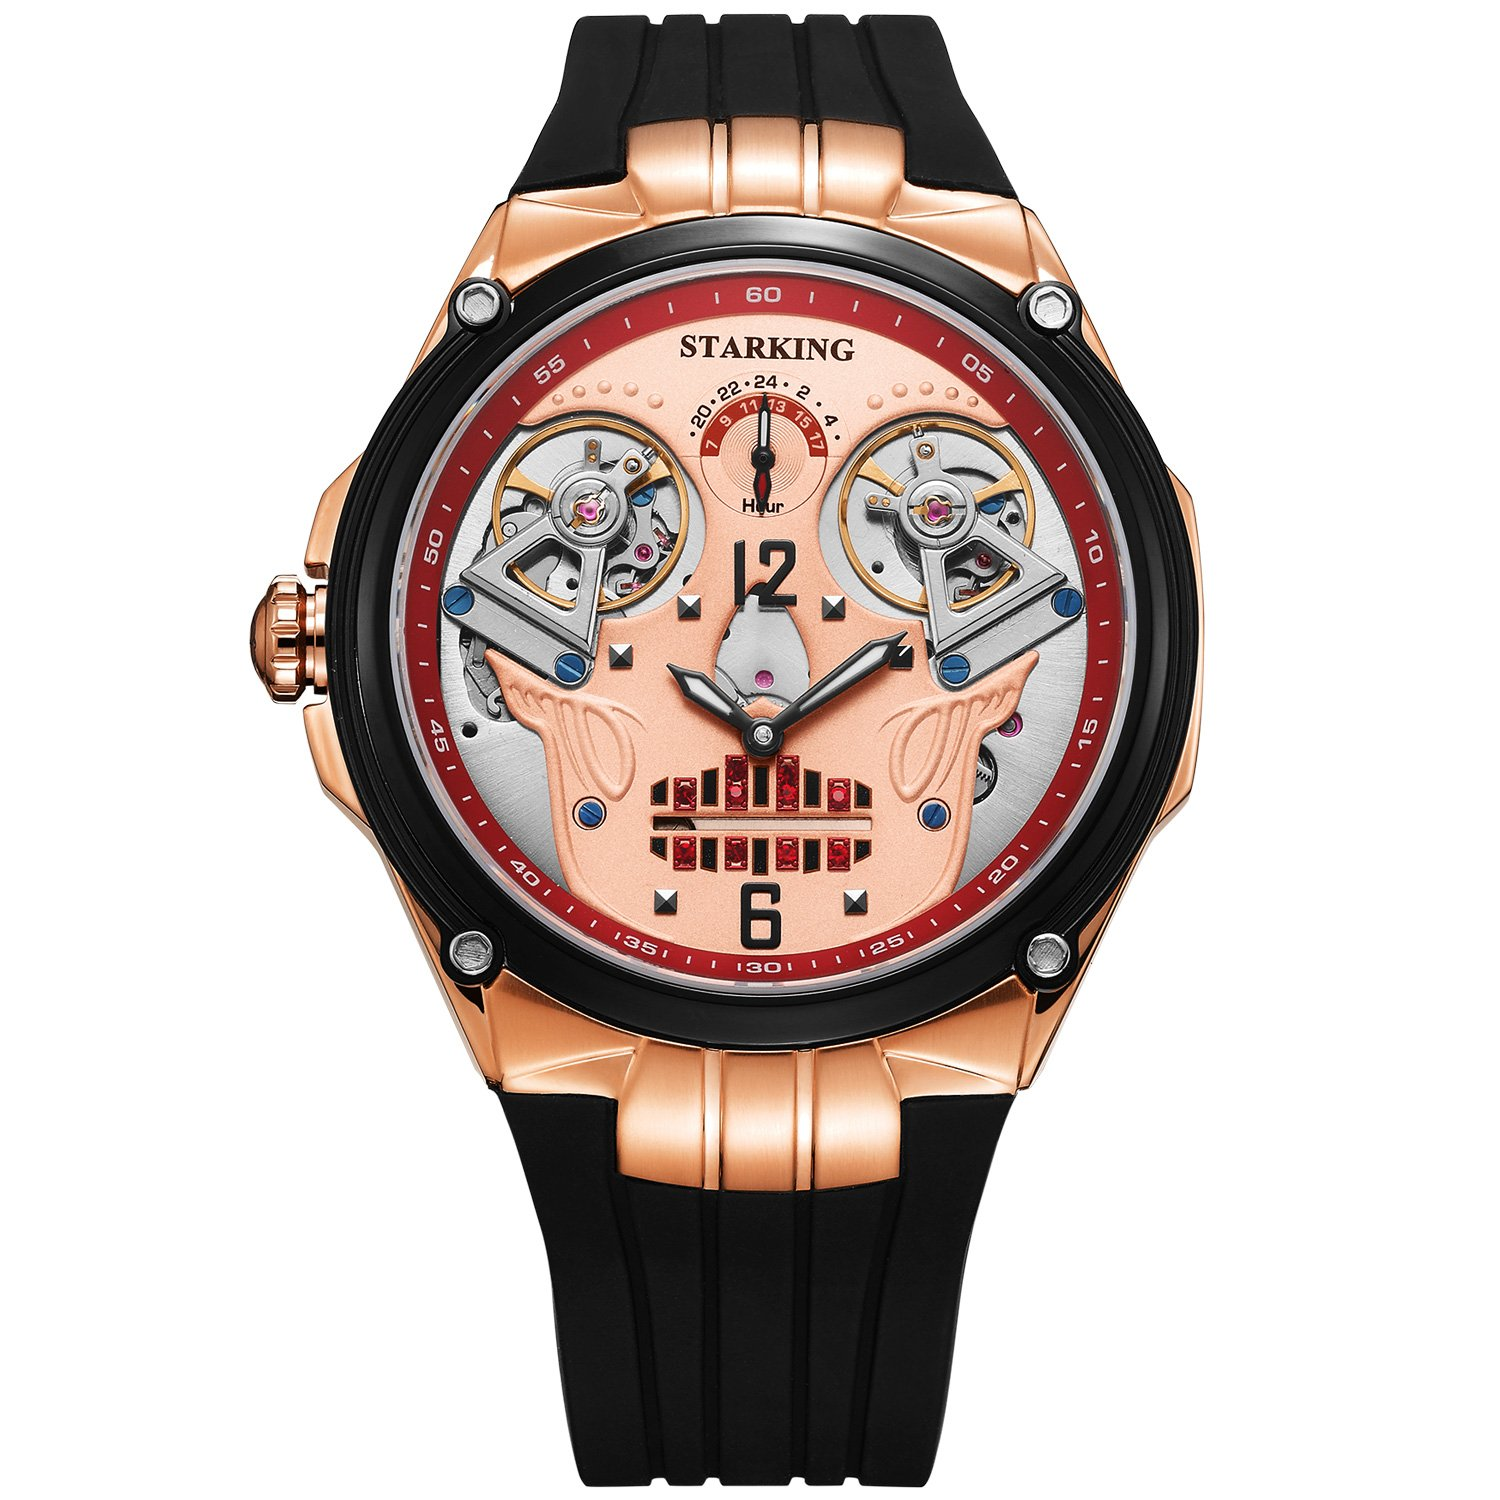 STARKING Skull Watch Black Men Automatic AM0223 Rose Gold Double Tourbillon Waterproof 5ATM Luminous Hands Silicone Band Sapphire 47mm Halloween Gift